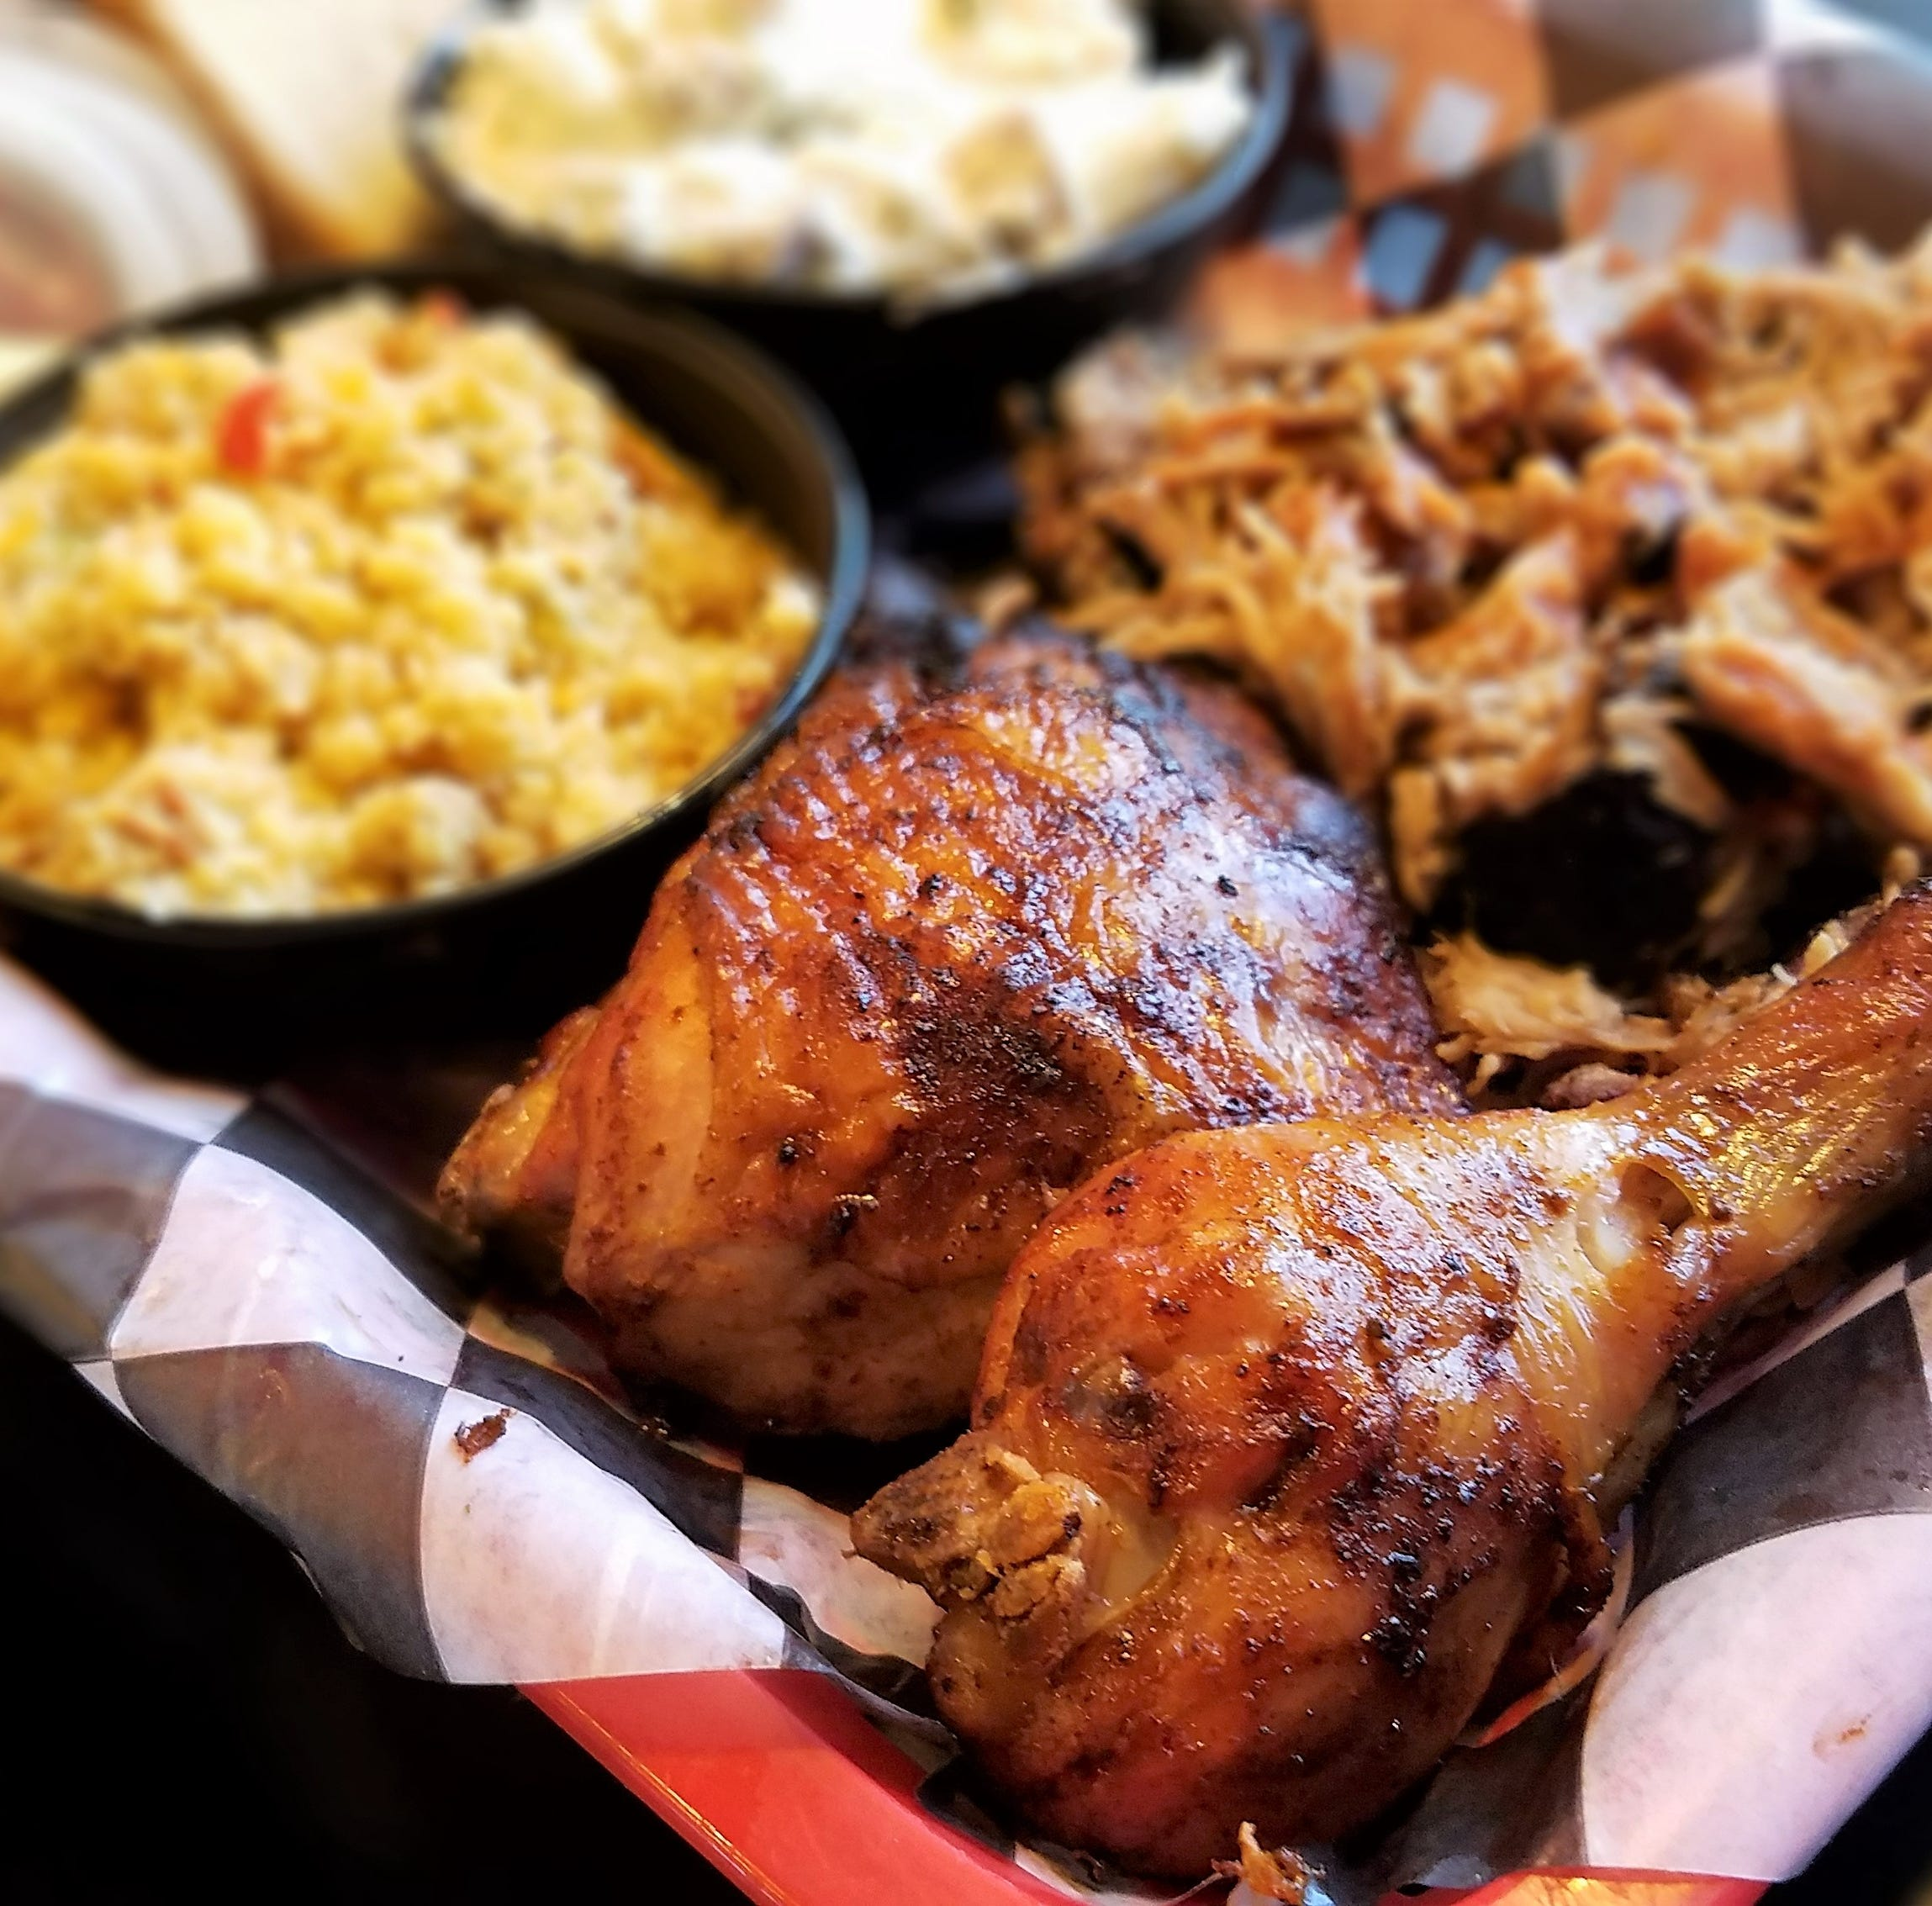 Petersburg's No. 423 Smokehouse offers barbecue, pizza worth the drive